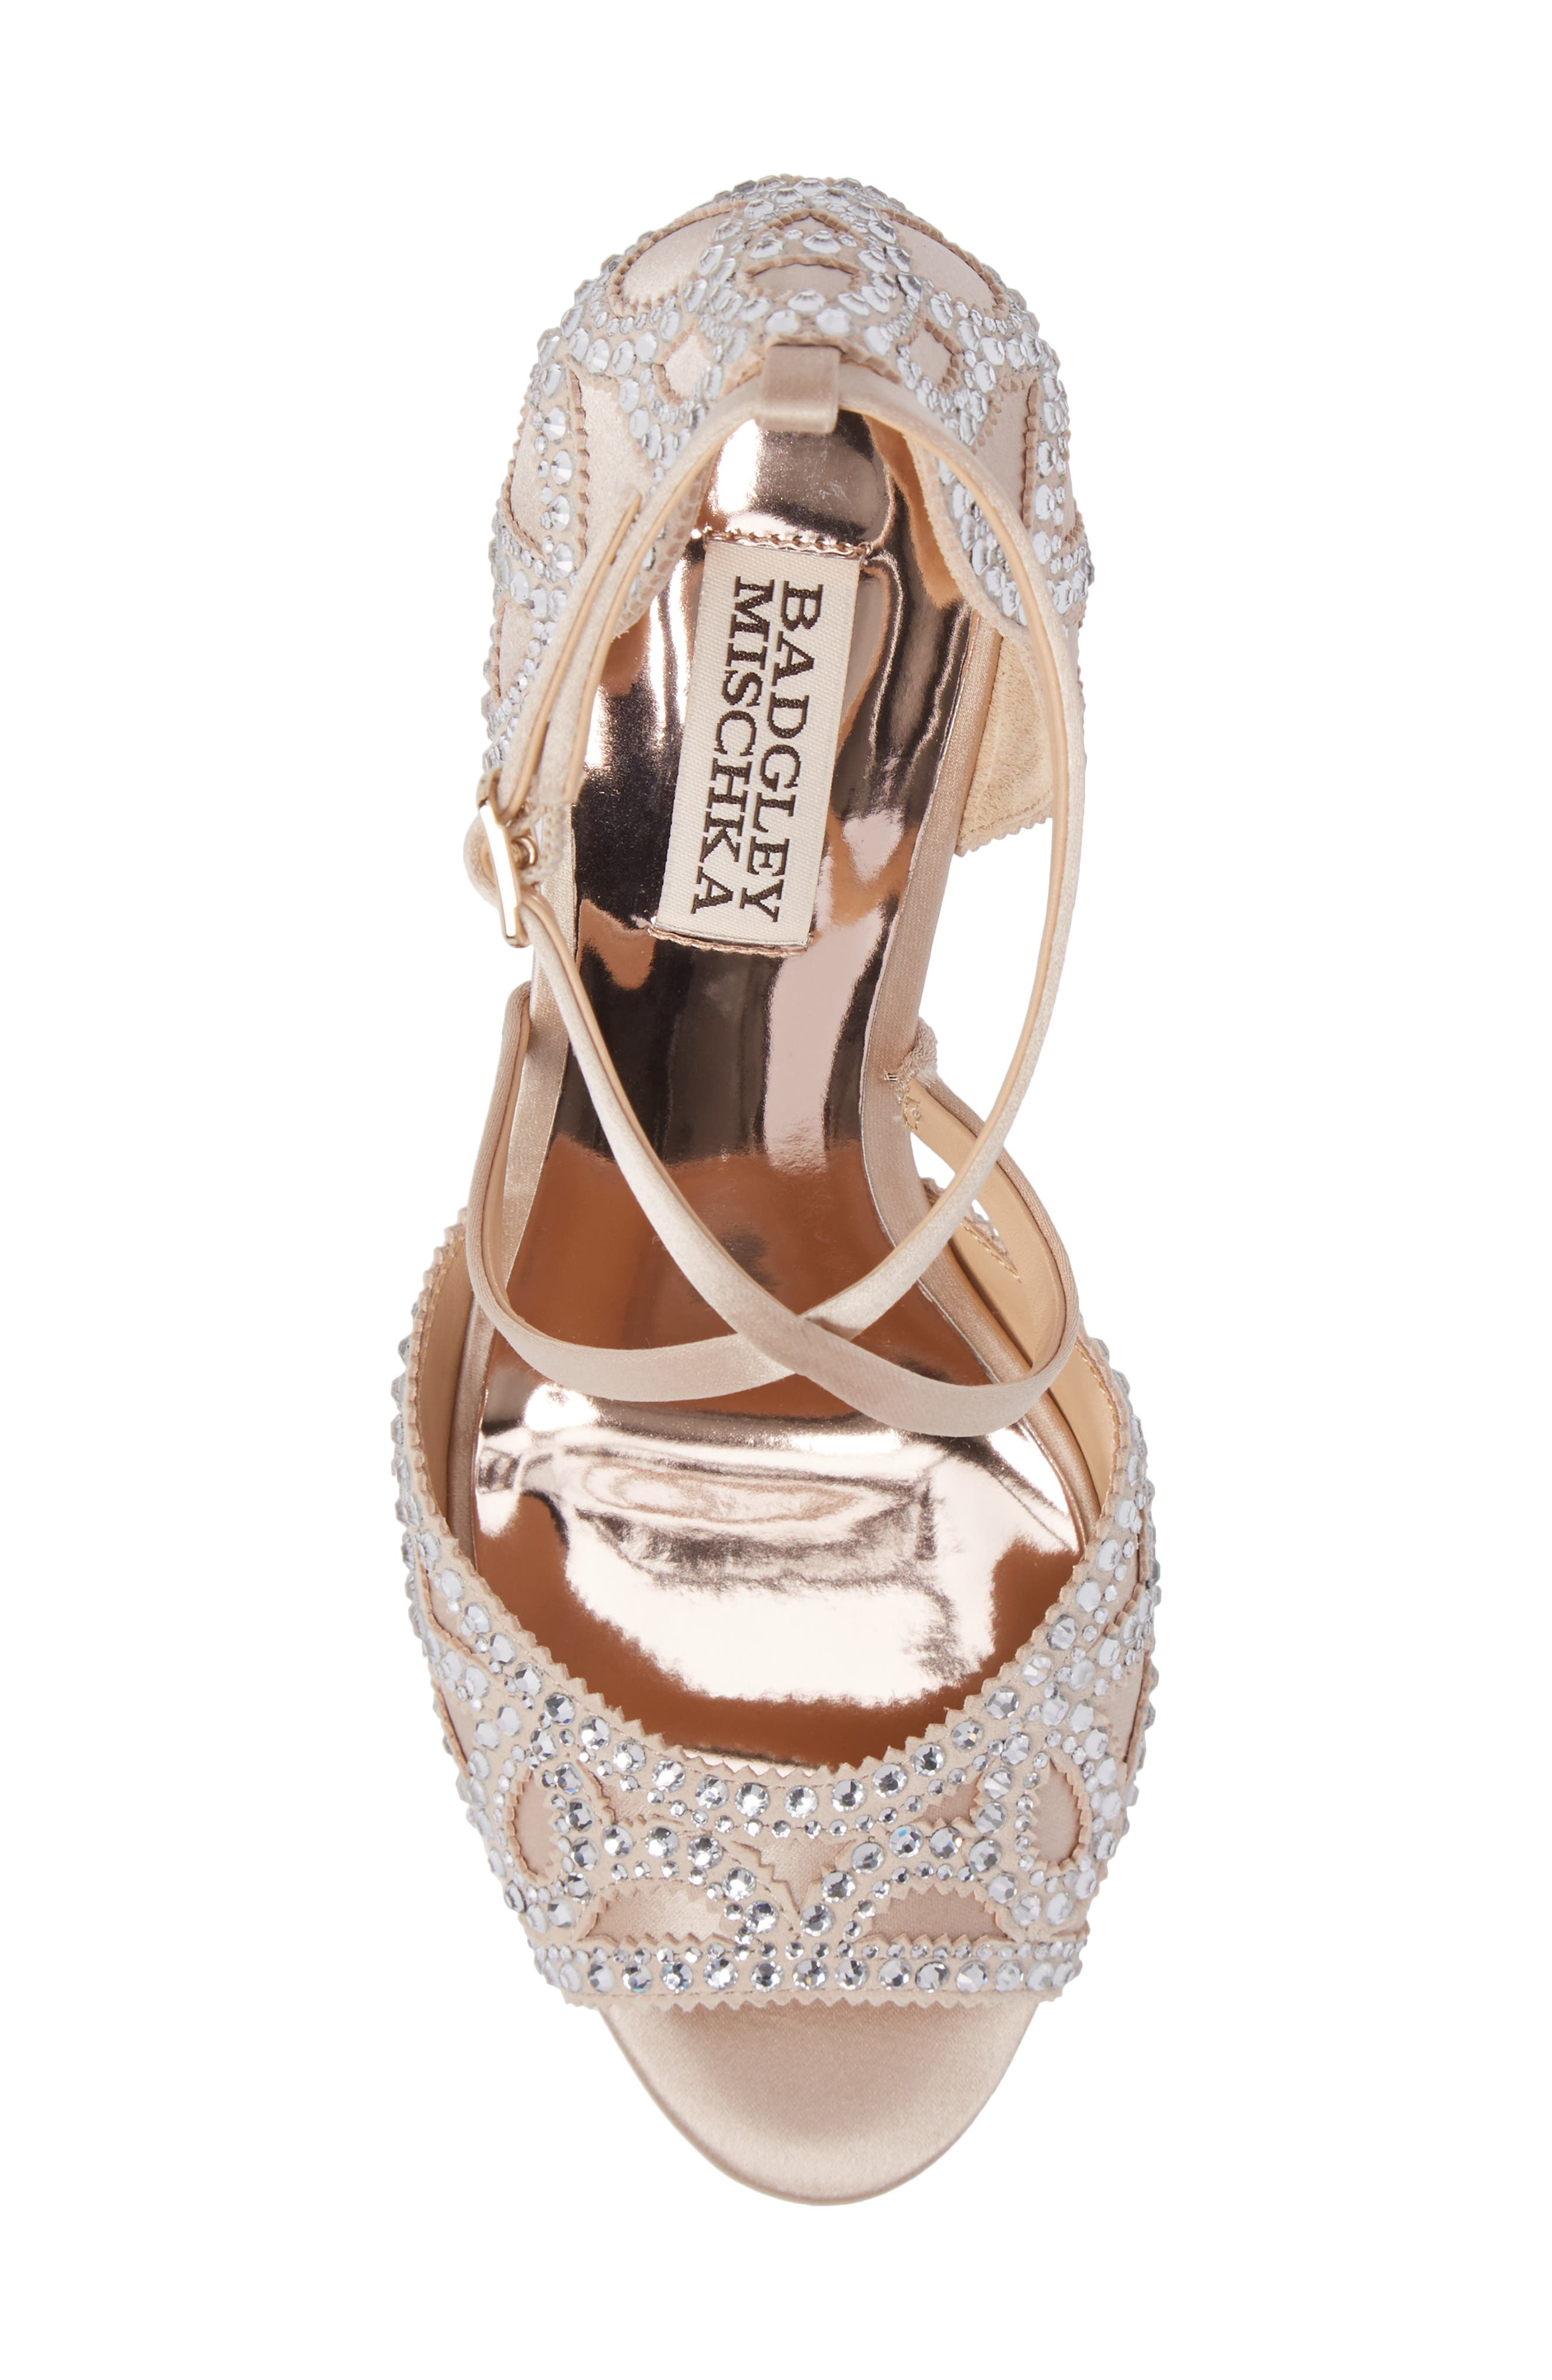 Winter Strappy Wedge Pump,                             Alternate thumbnail 5, color,                             Nude Satin